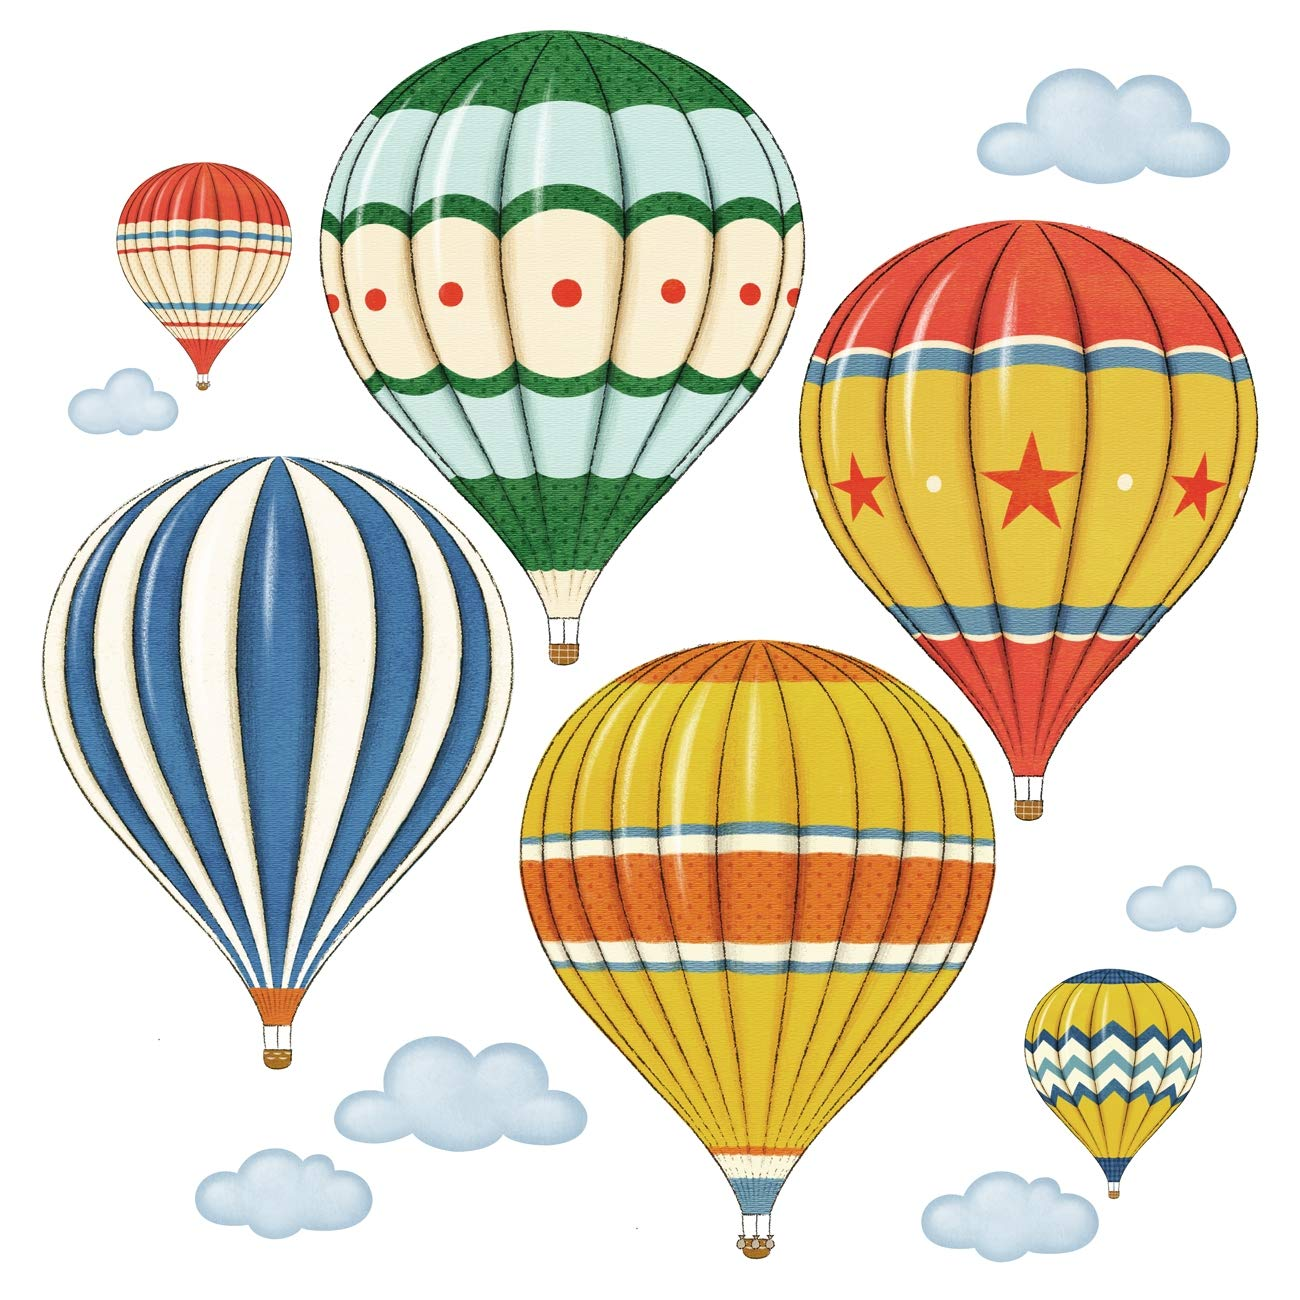 Decowall DW-1301AC-2 12 Hot Air Balloons in The Sky Kids Wall Stickers Wall Decals Peel and Stick Removable Wall Stickers for Kids Nursery Bedroom Living Room